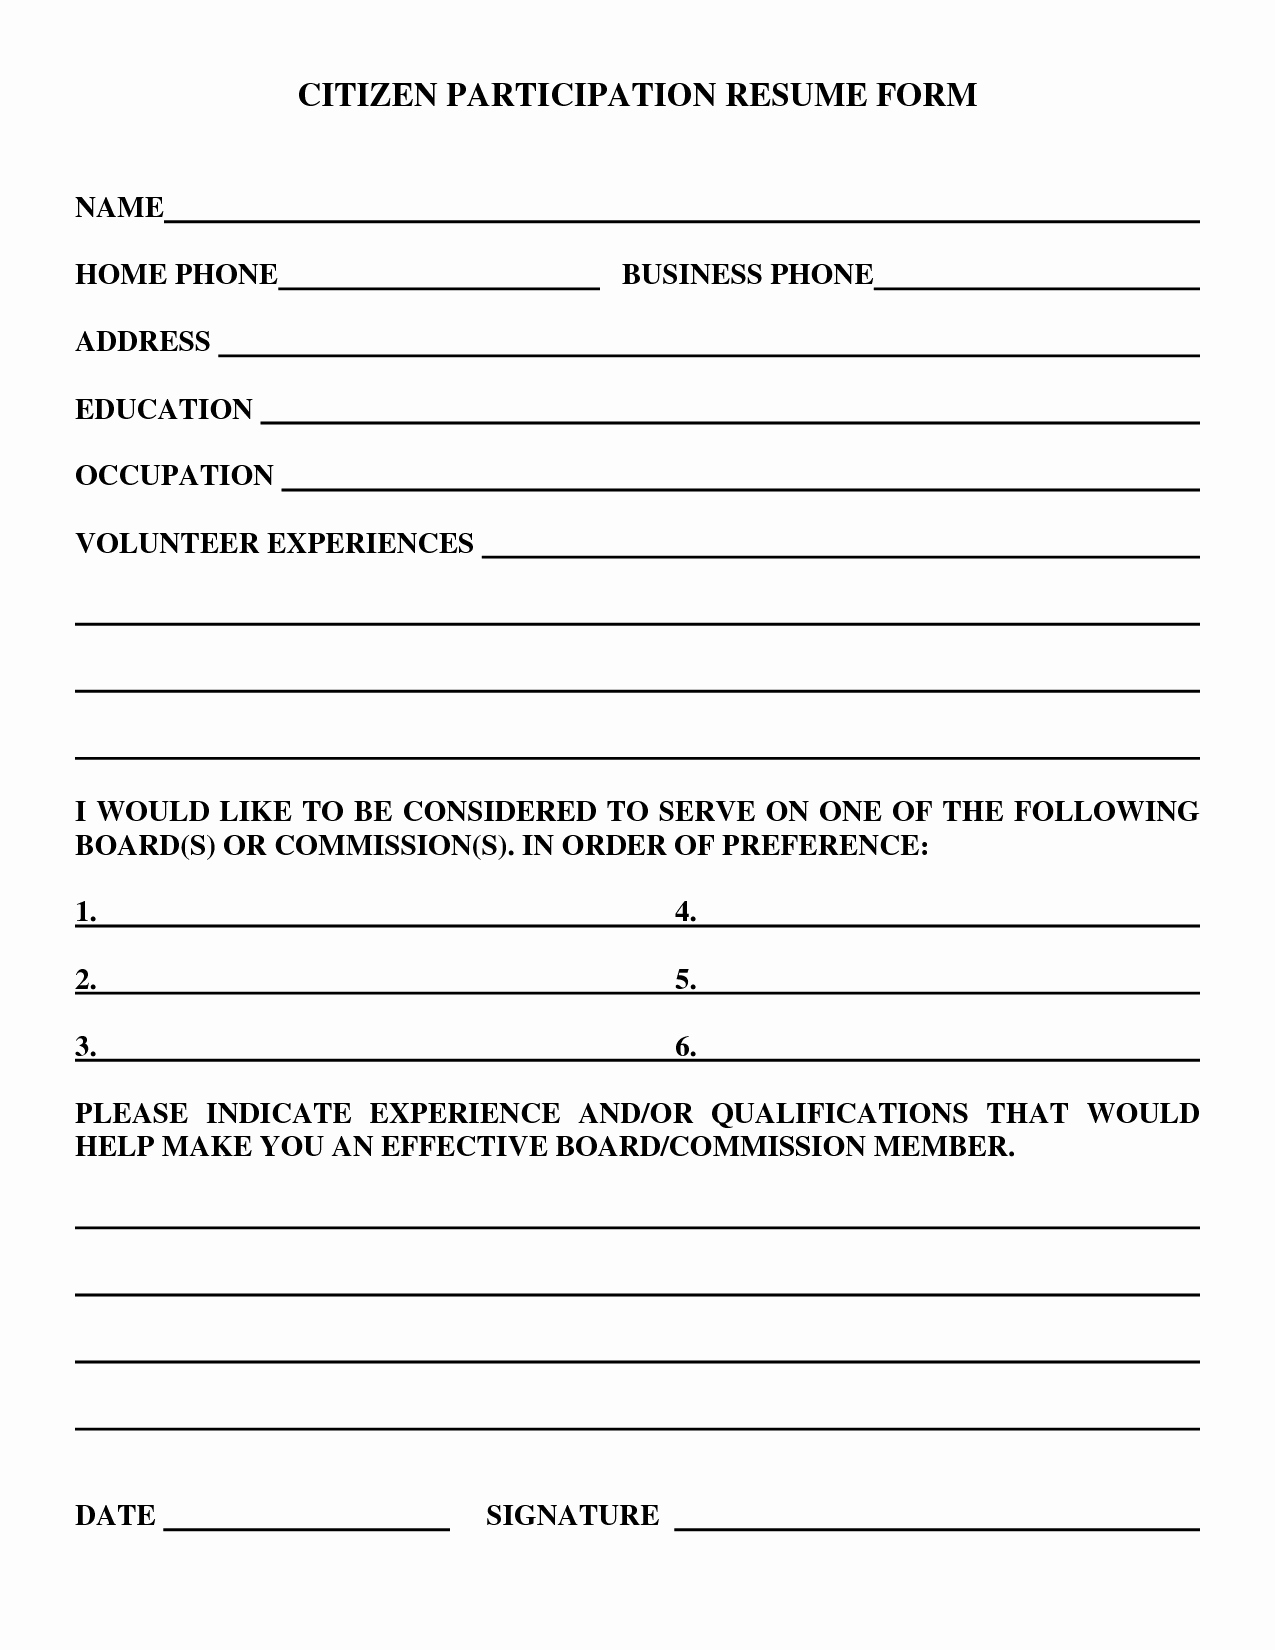 Resume forms to Fill Out Beautiful Best S Of Free Resume forms Can Print Free Resume